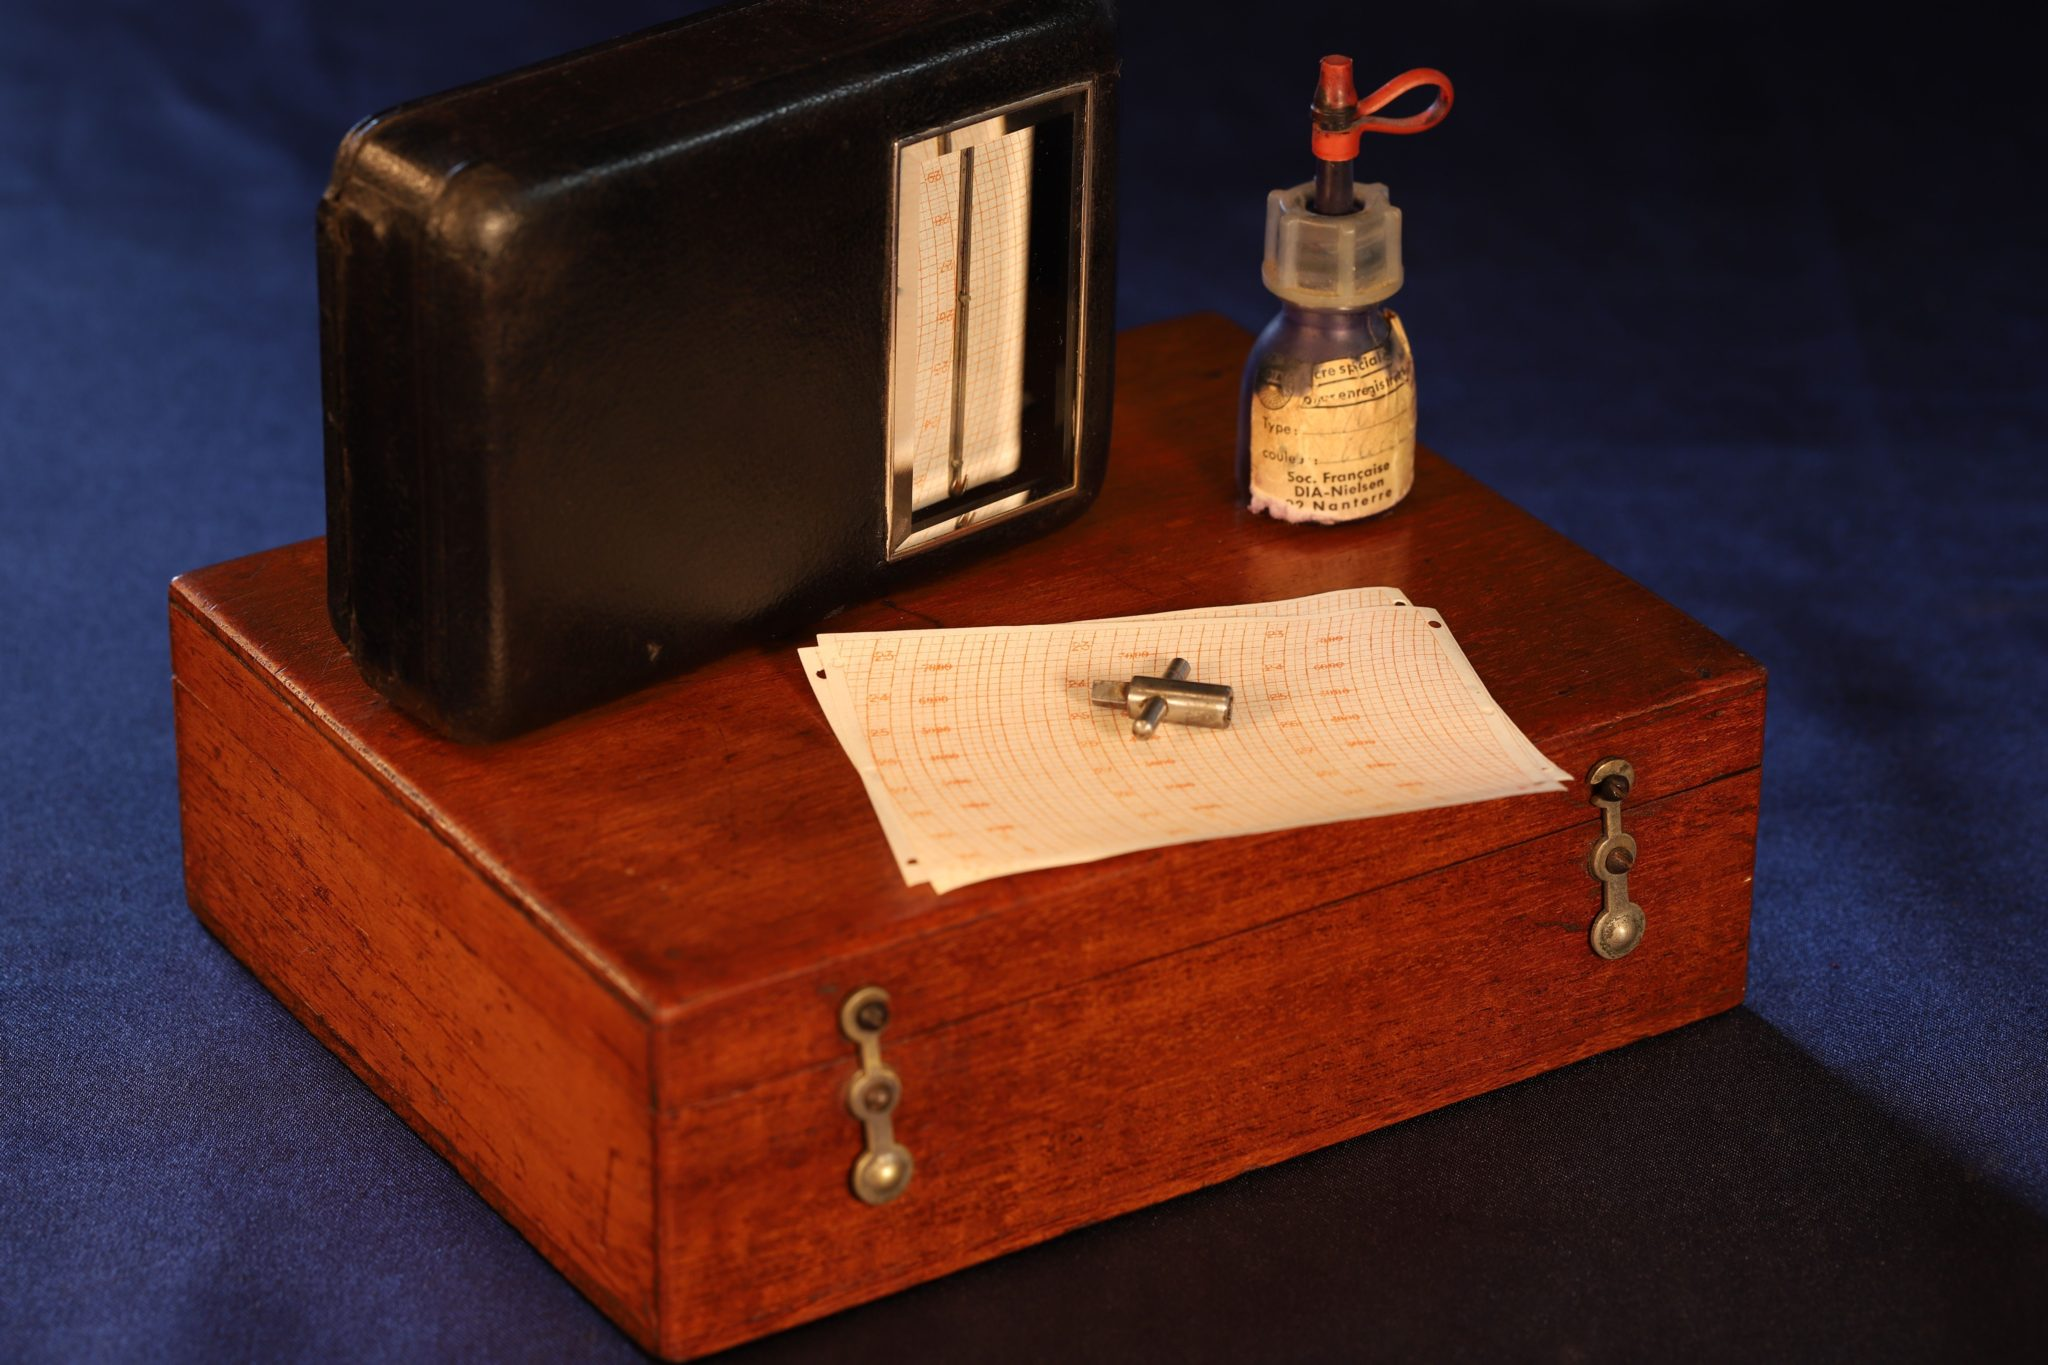 Image of Richard Freres Pocket Barograph No 1471 c1910